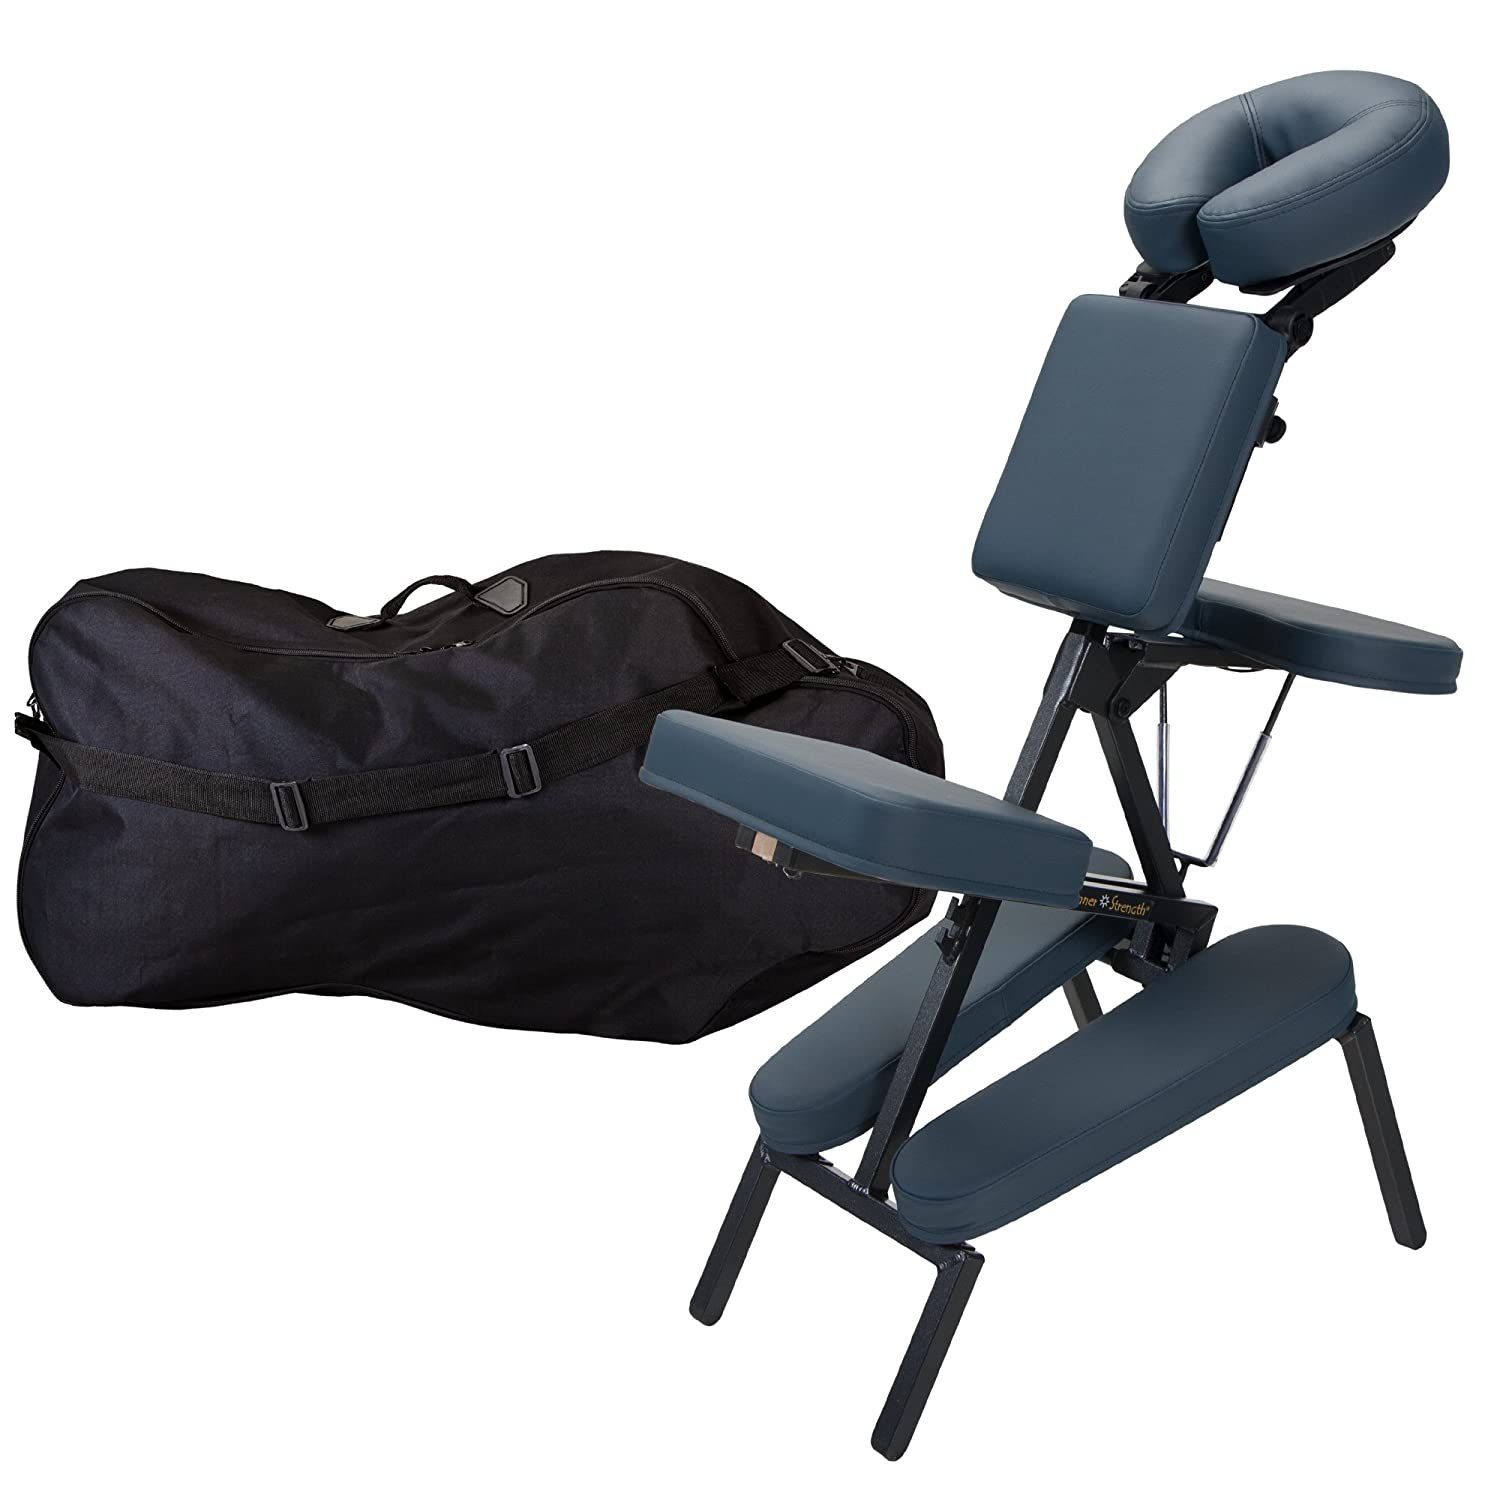 INNER STRENGTH Portable Folding Massage Chair ELEMENT - Tattoo Spa Massage Therapy Chair incl. Deluxe Adjustable Headrest & Carry Case, 100% PU (Only 16lbs) 20765